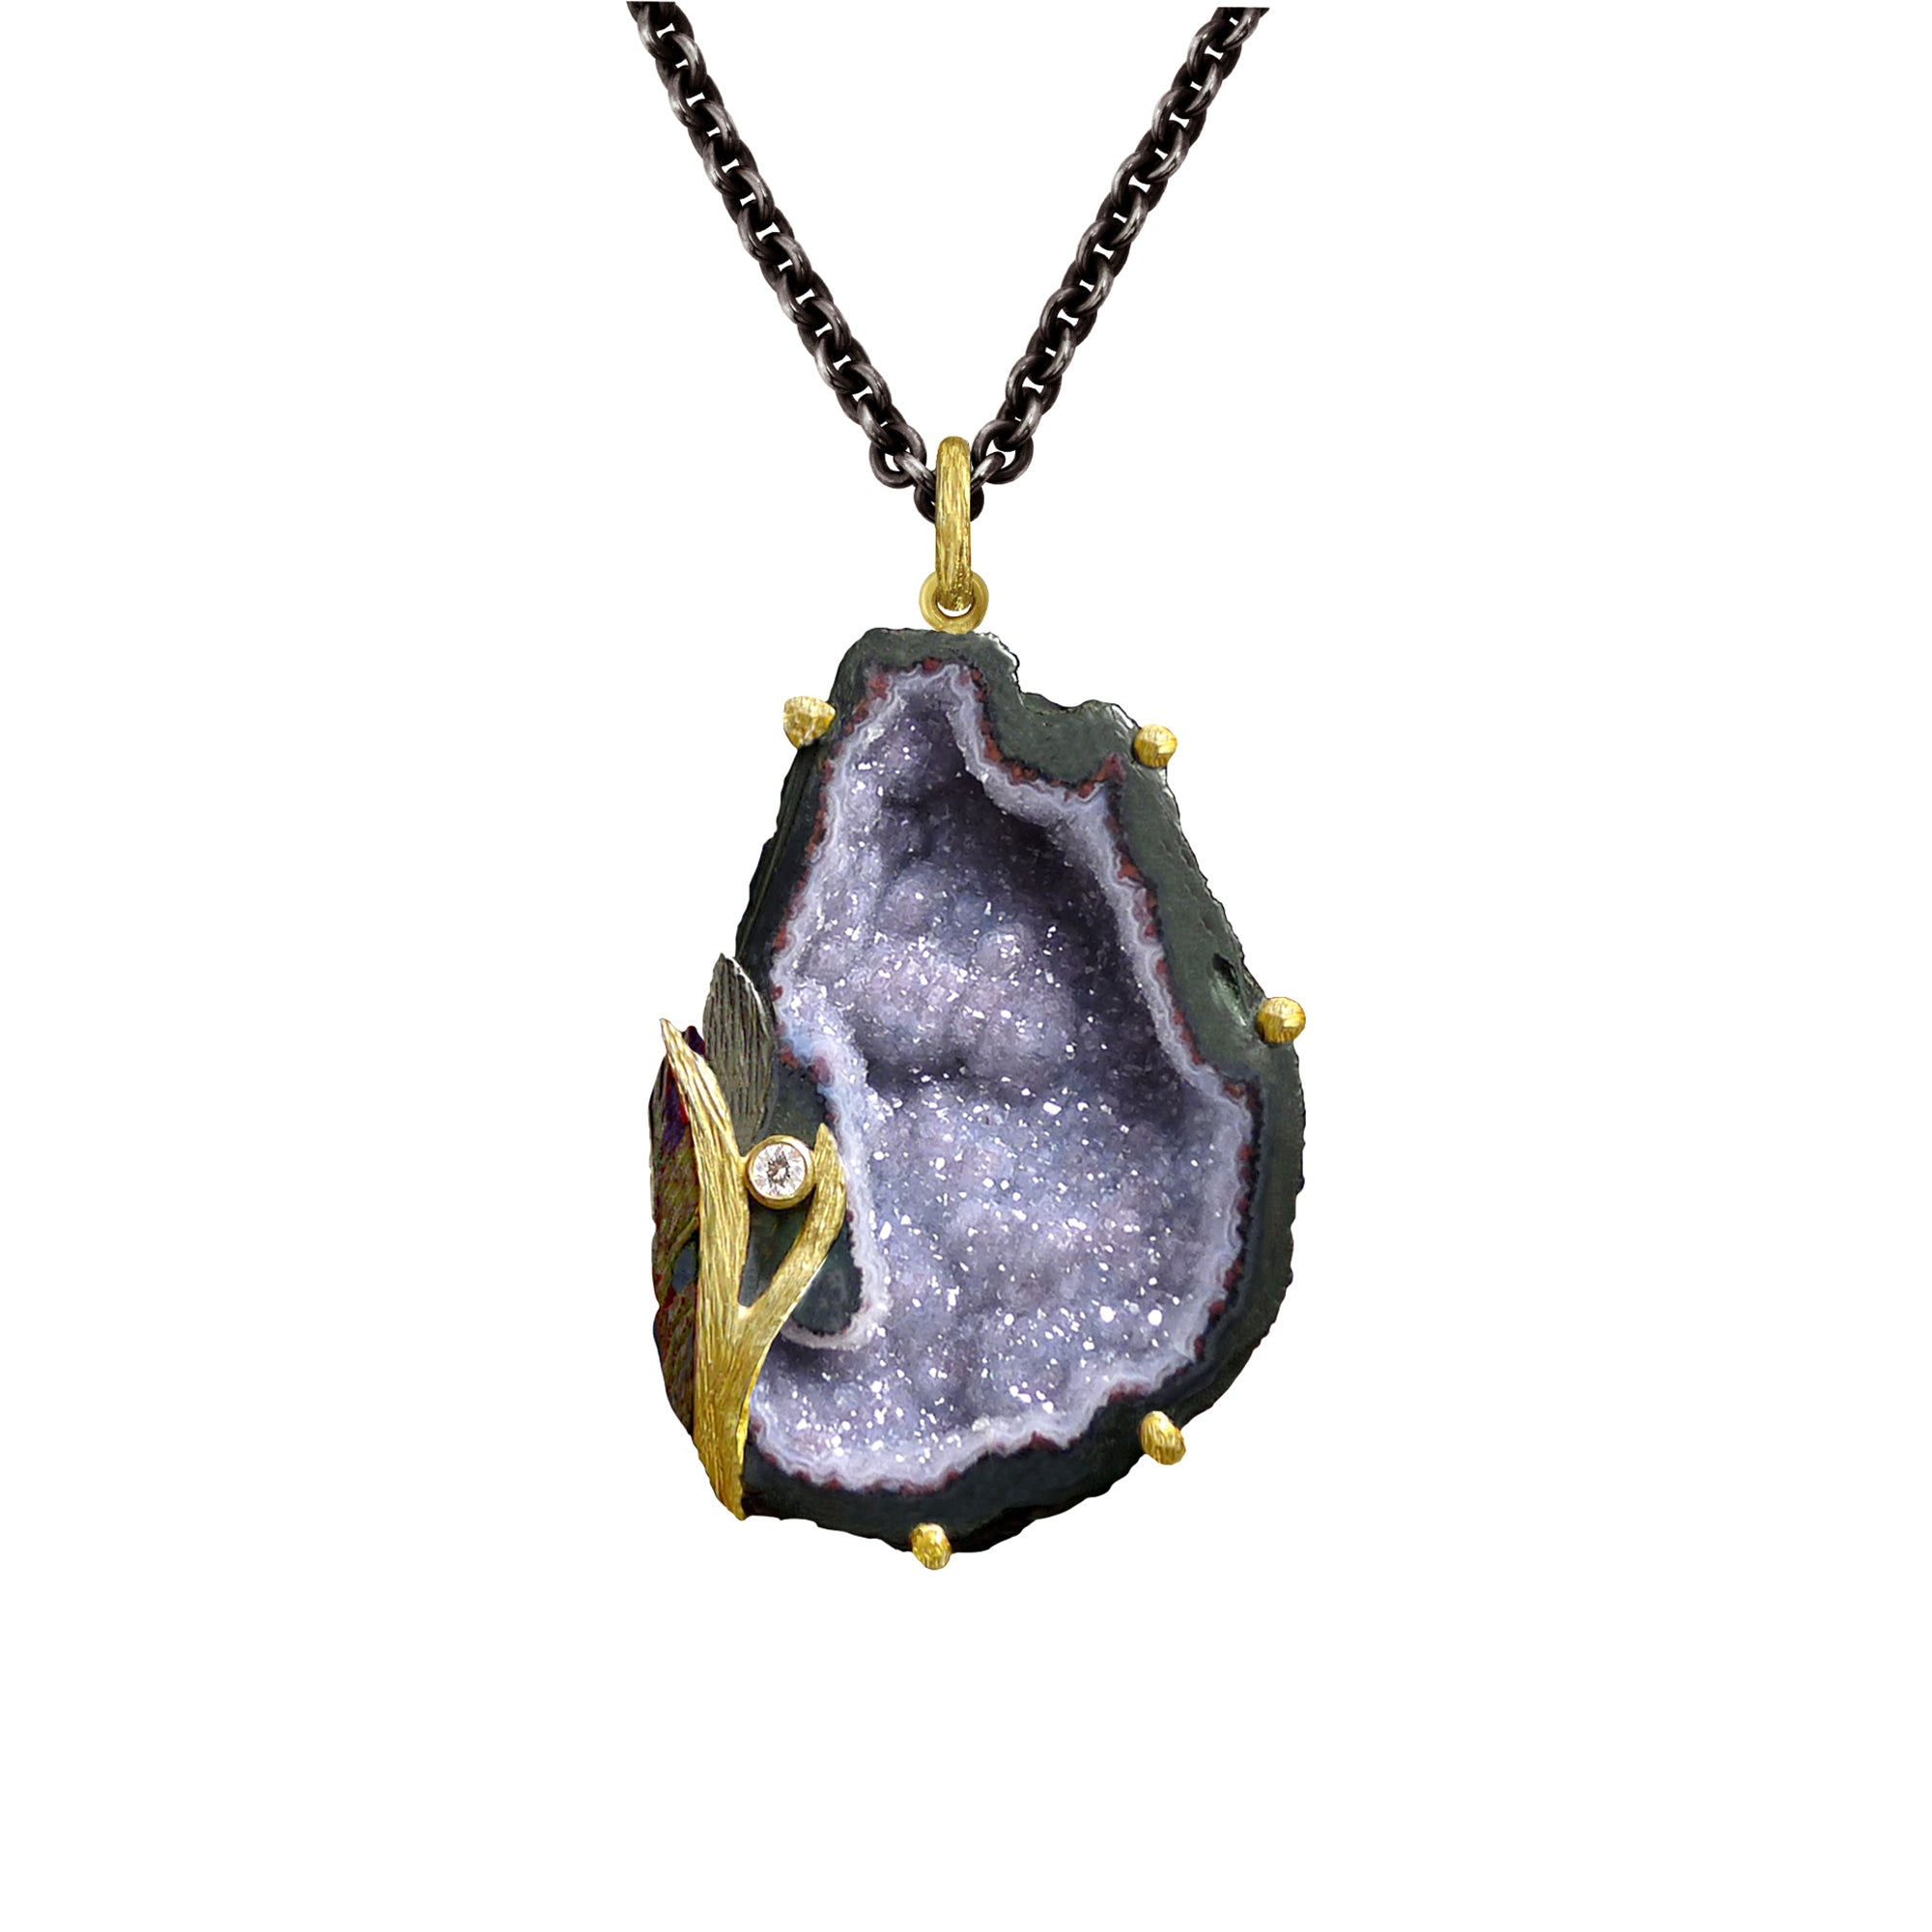 Lavender Geode Lemongrass Necklace by Laurie Kaiser - Talisman Collection Fine Jewelers